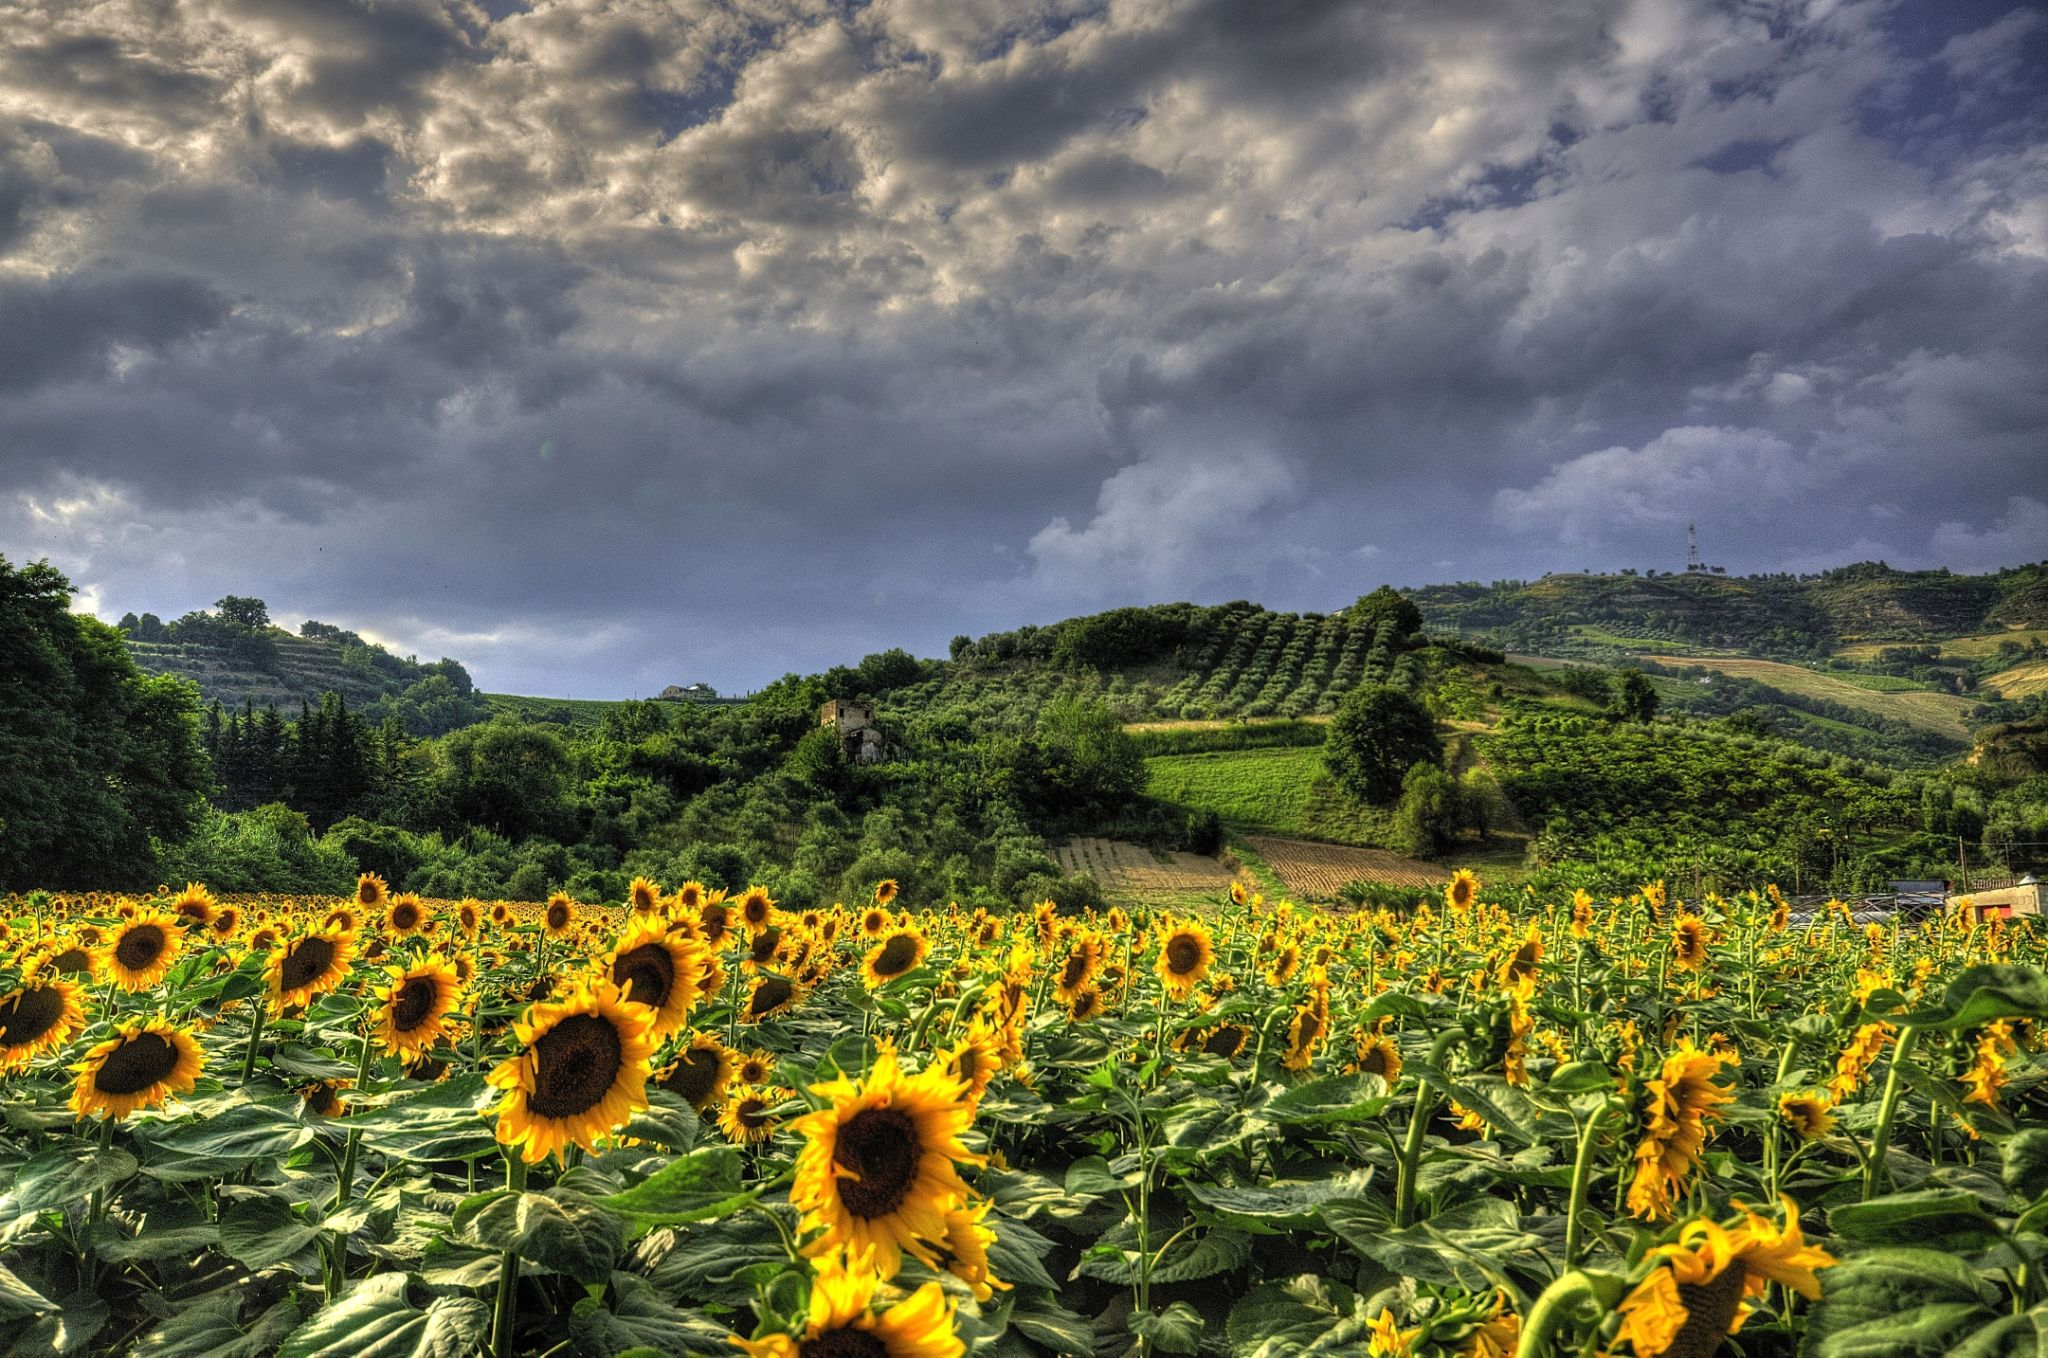 sunflowers by peppeedicola.palestini